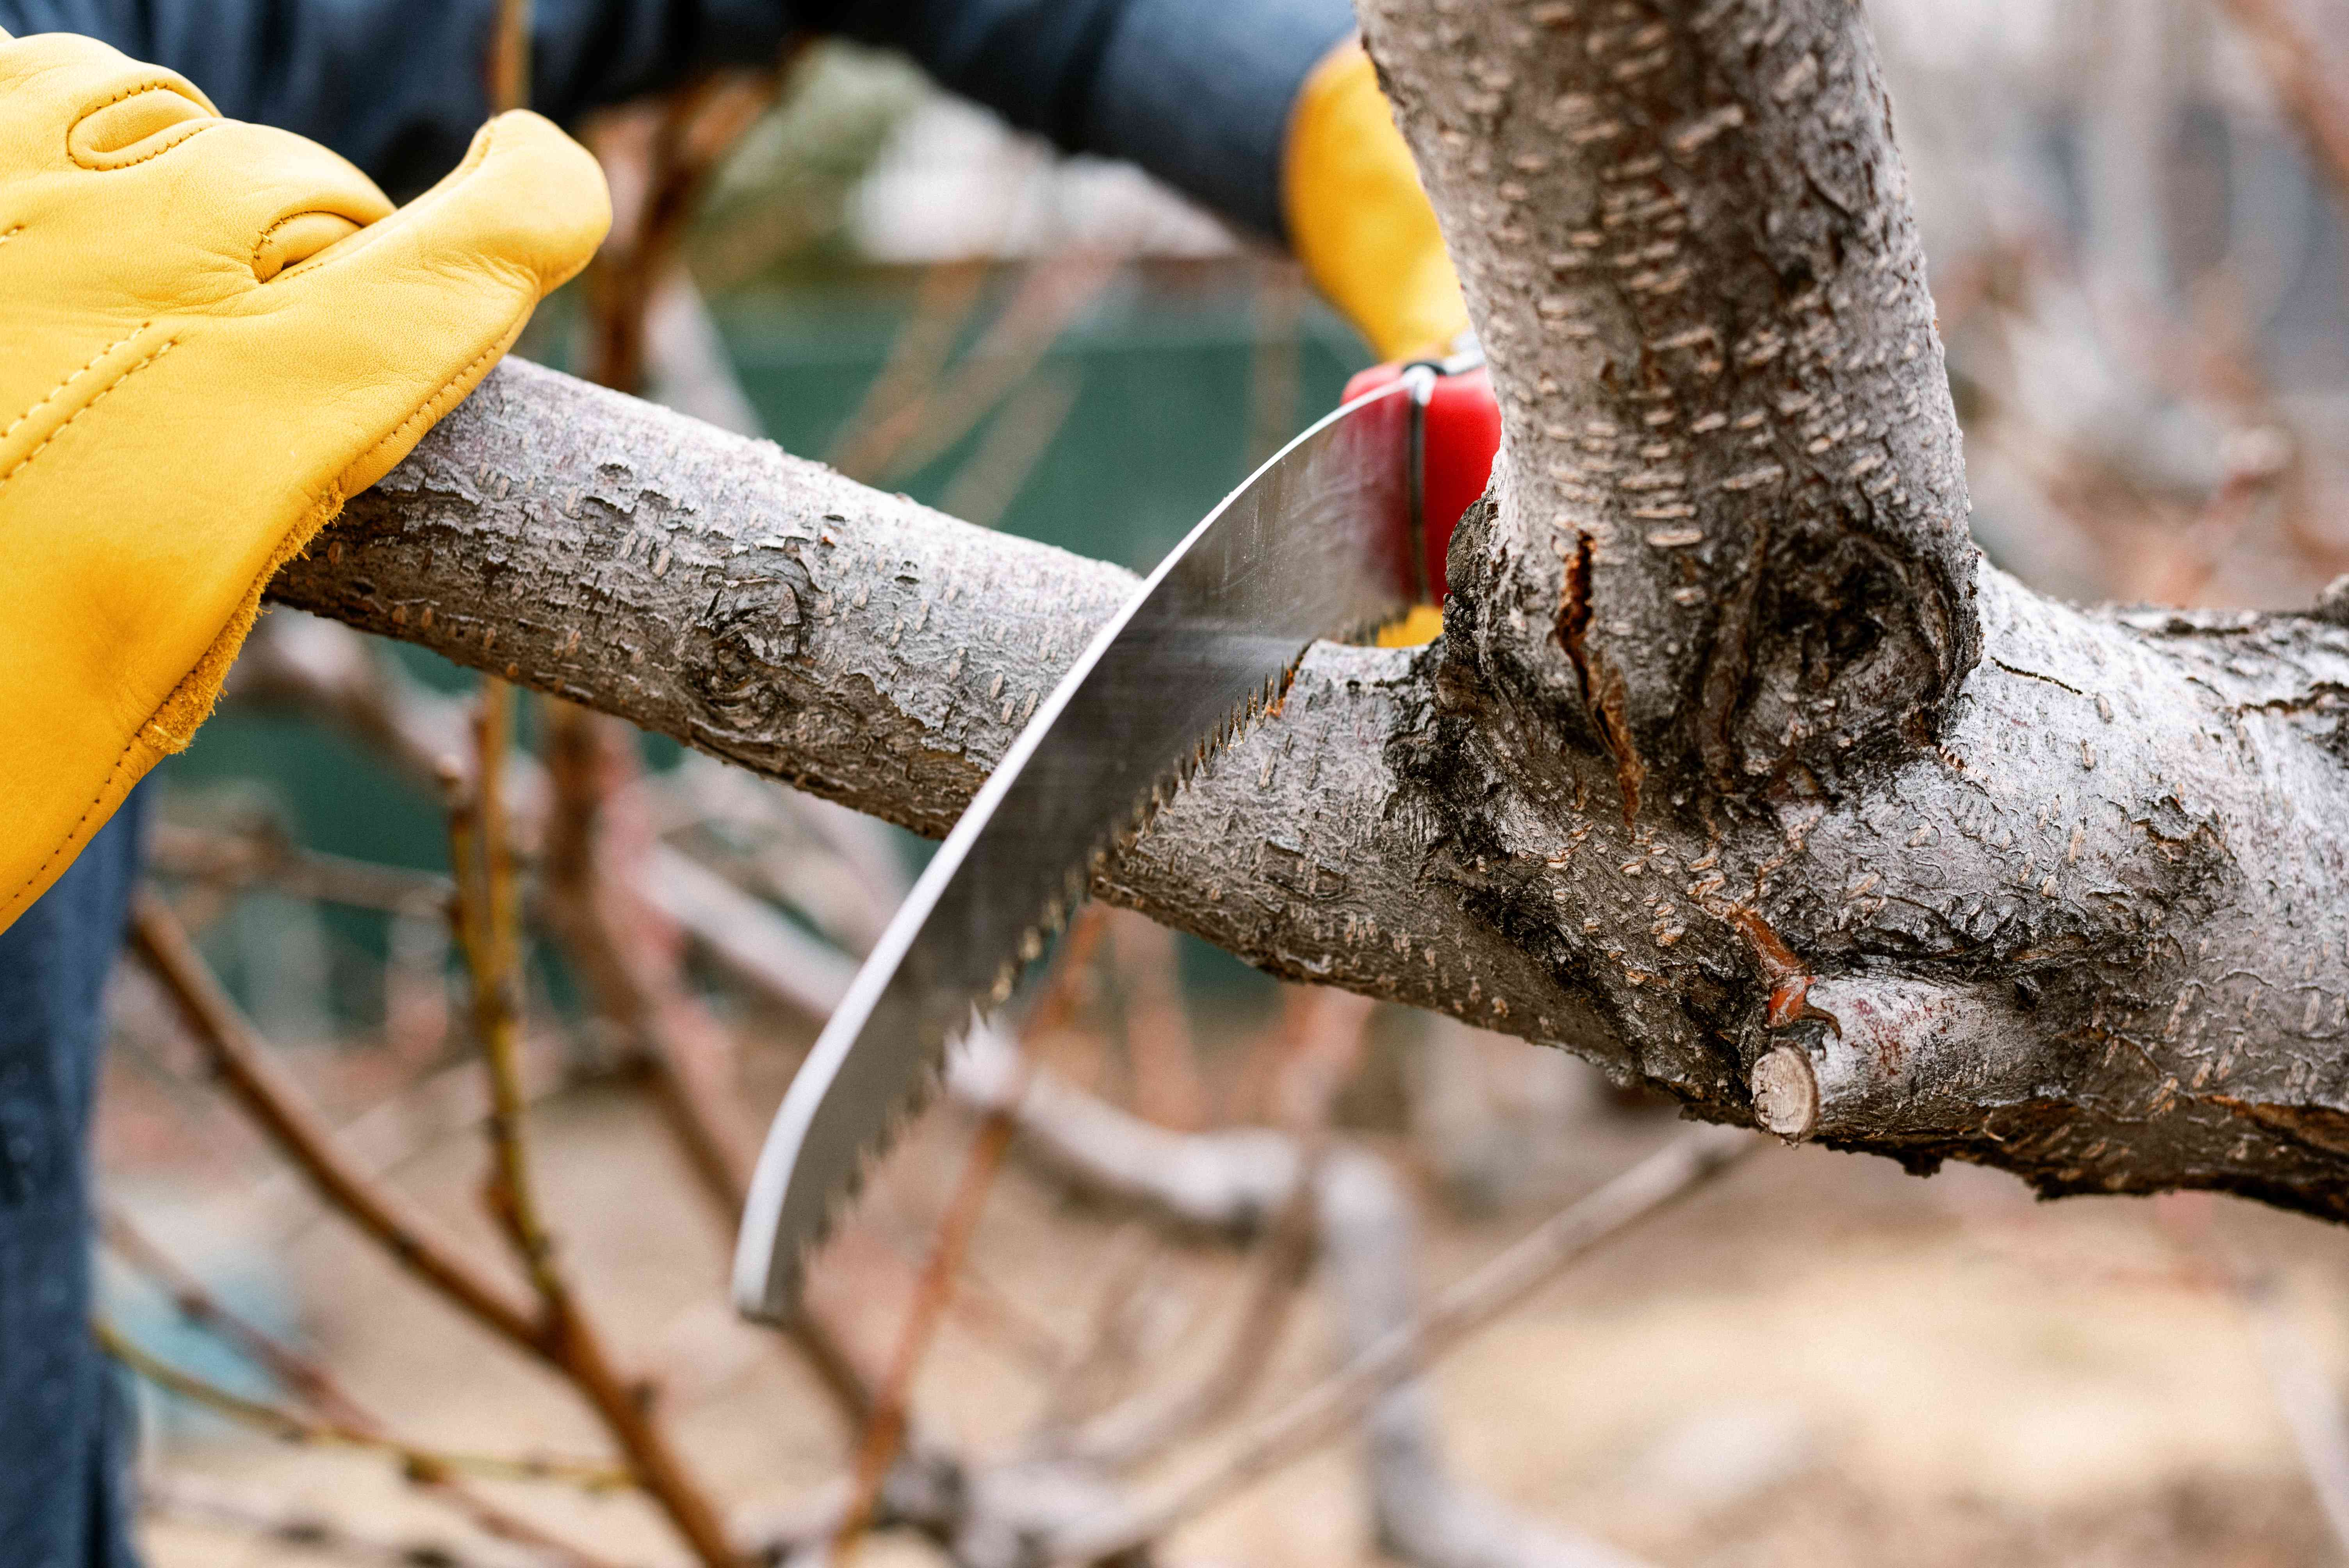 Srub branch being cut with pruning saw and held by hand on the end with yellow protective gloves